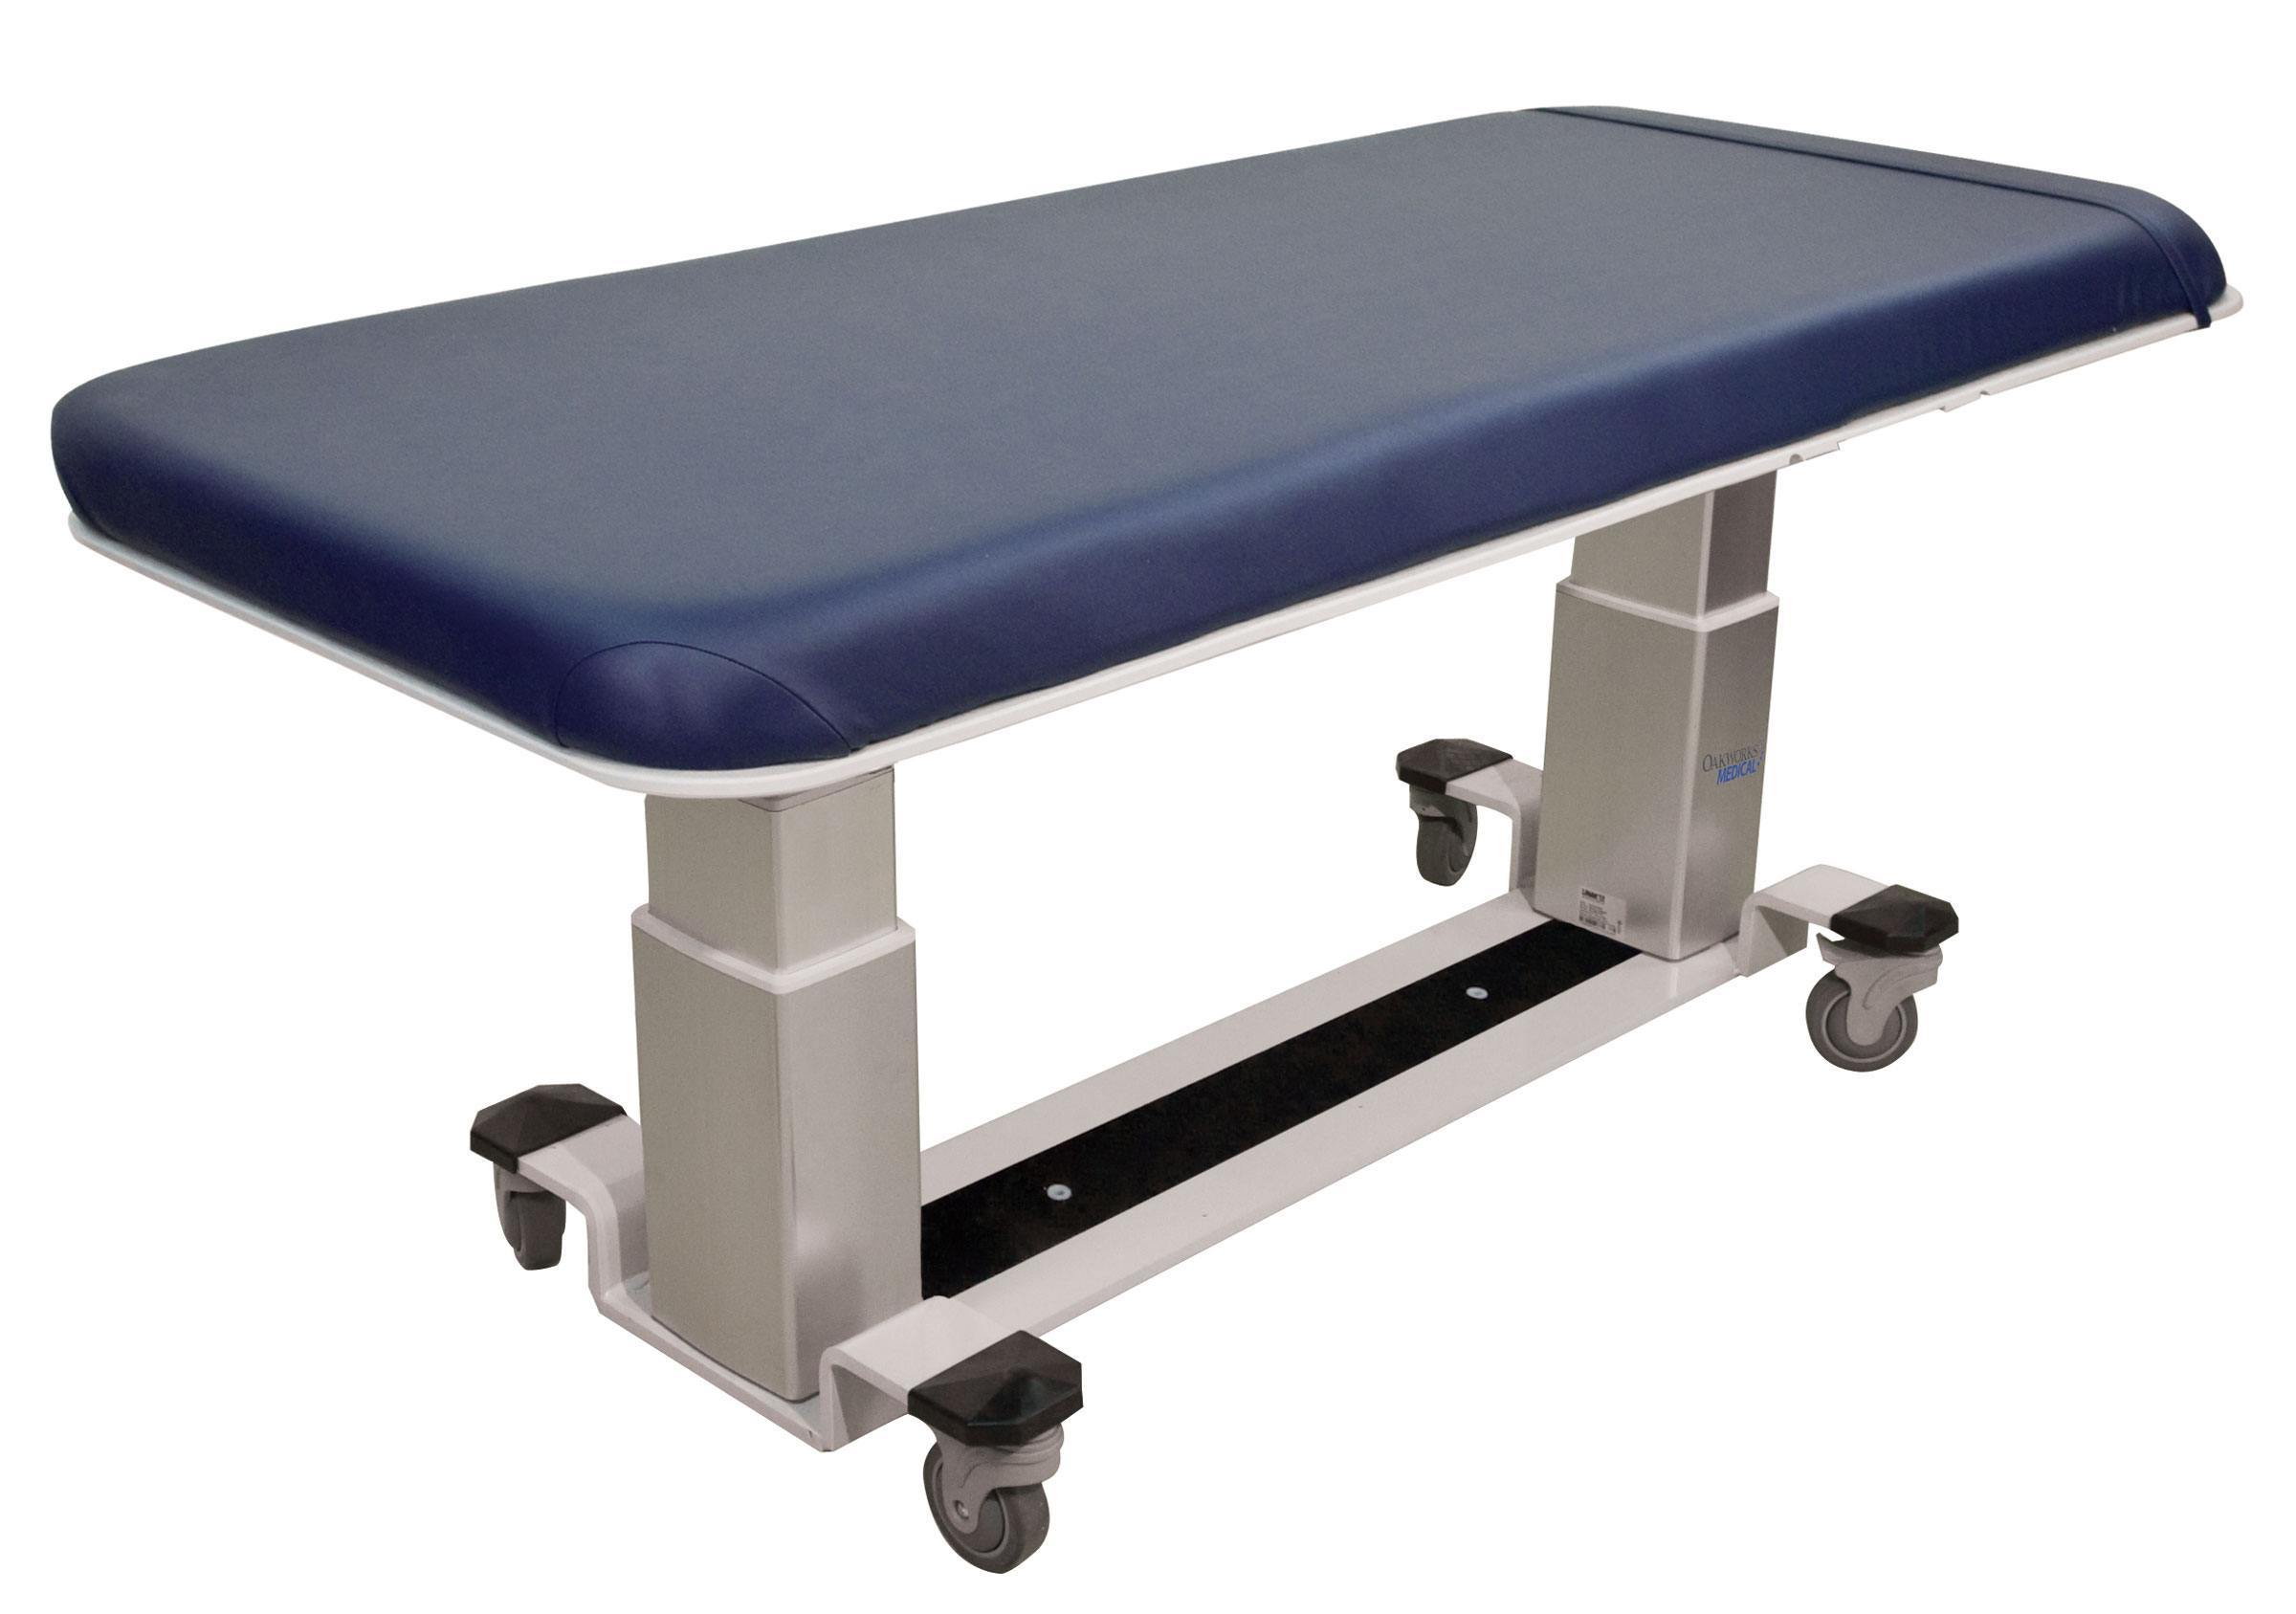 General Rectangular Top Table